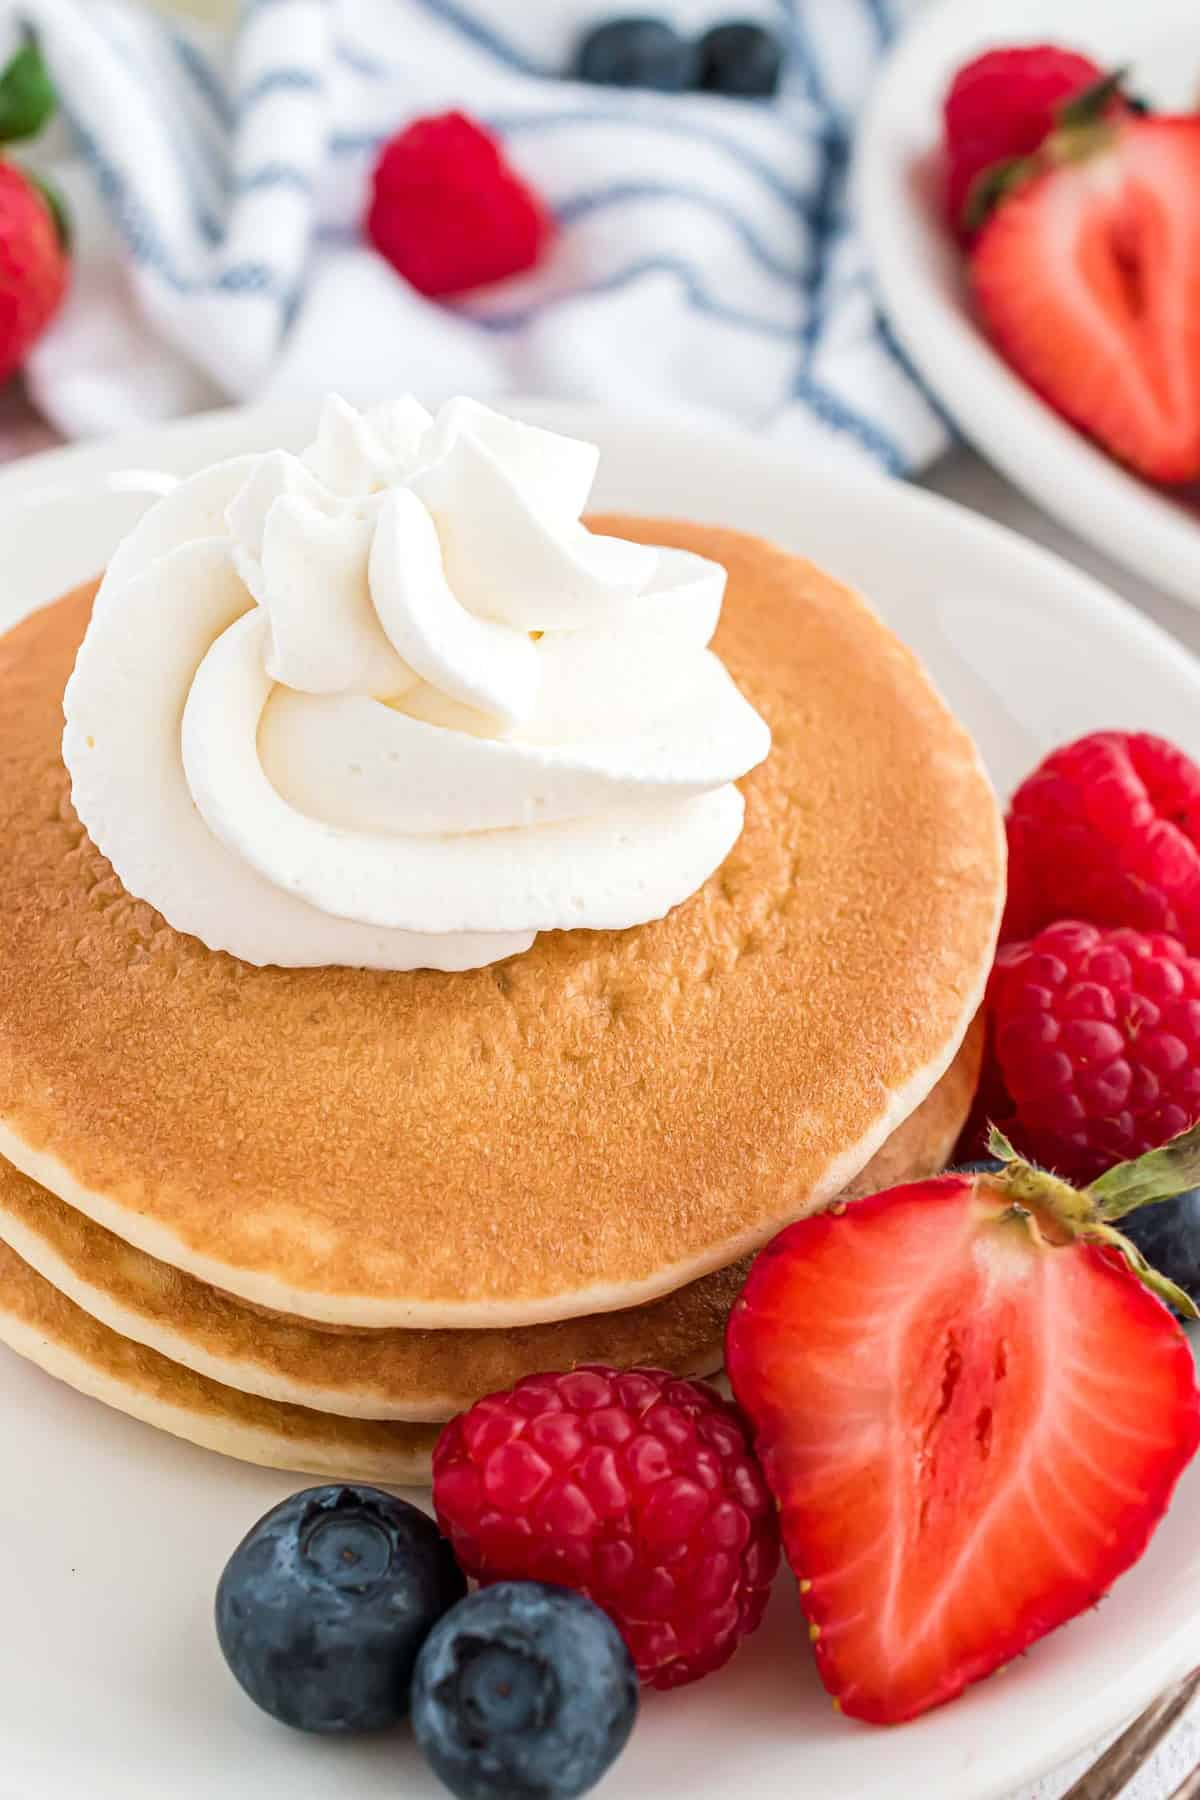 Whipped cream on a short stack of pancakes with fresh berries.